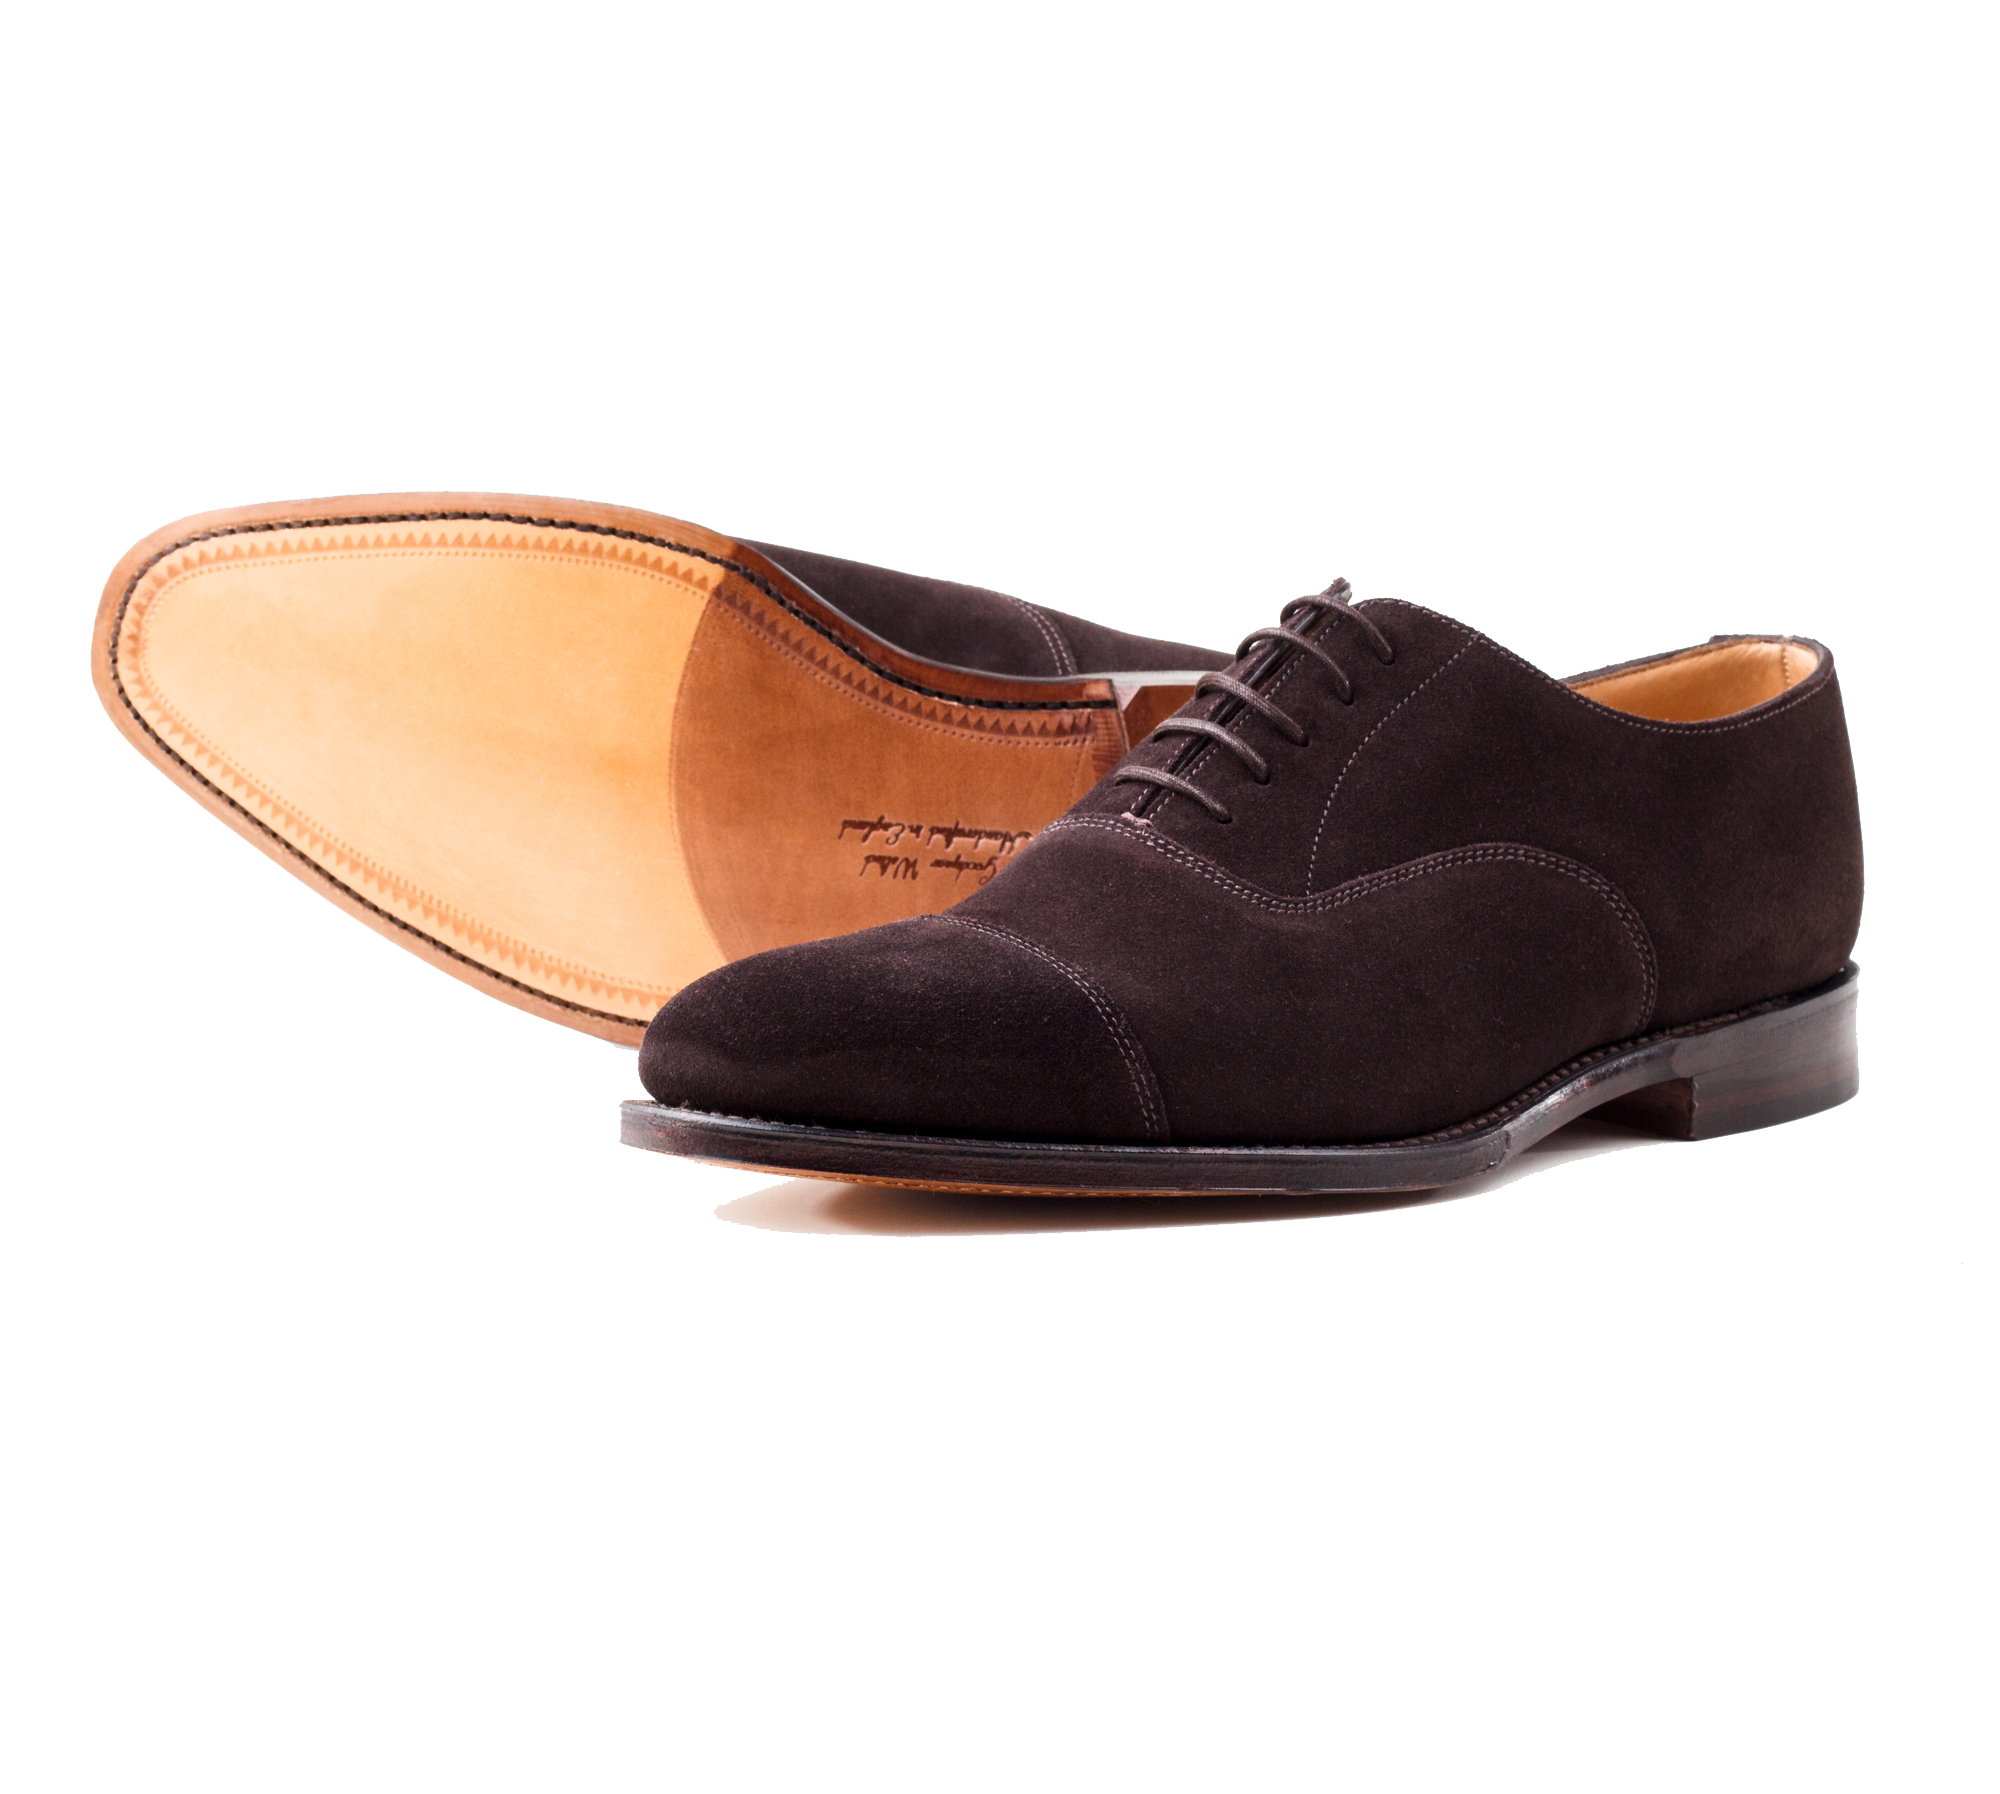 фото Оксфорды Loake, Aldwych Dark Brown suede от магазина MENSHOES